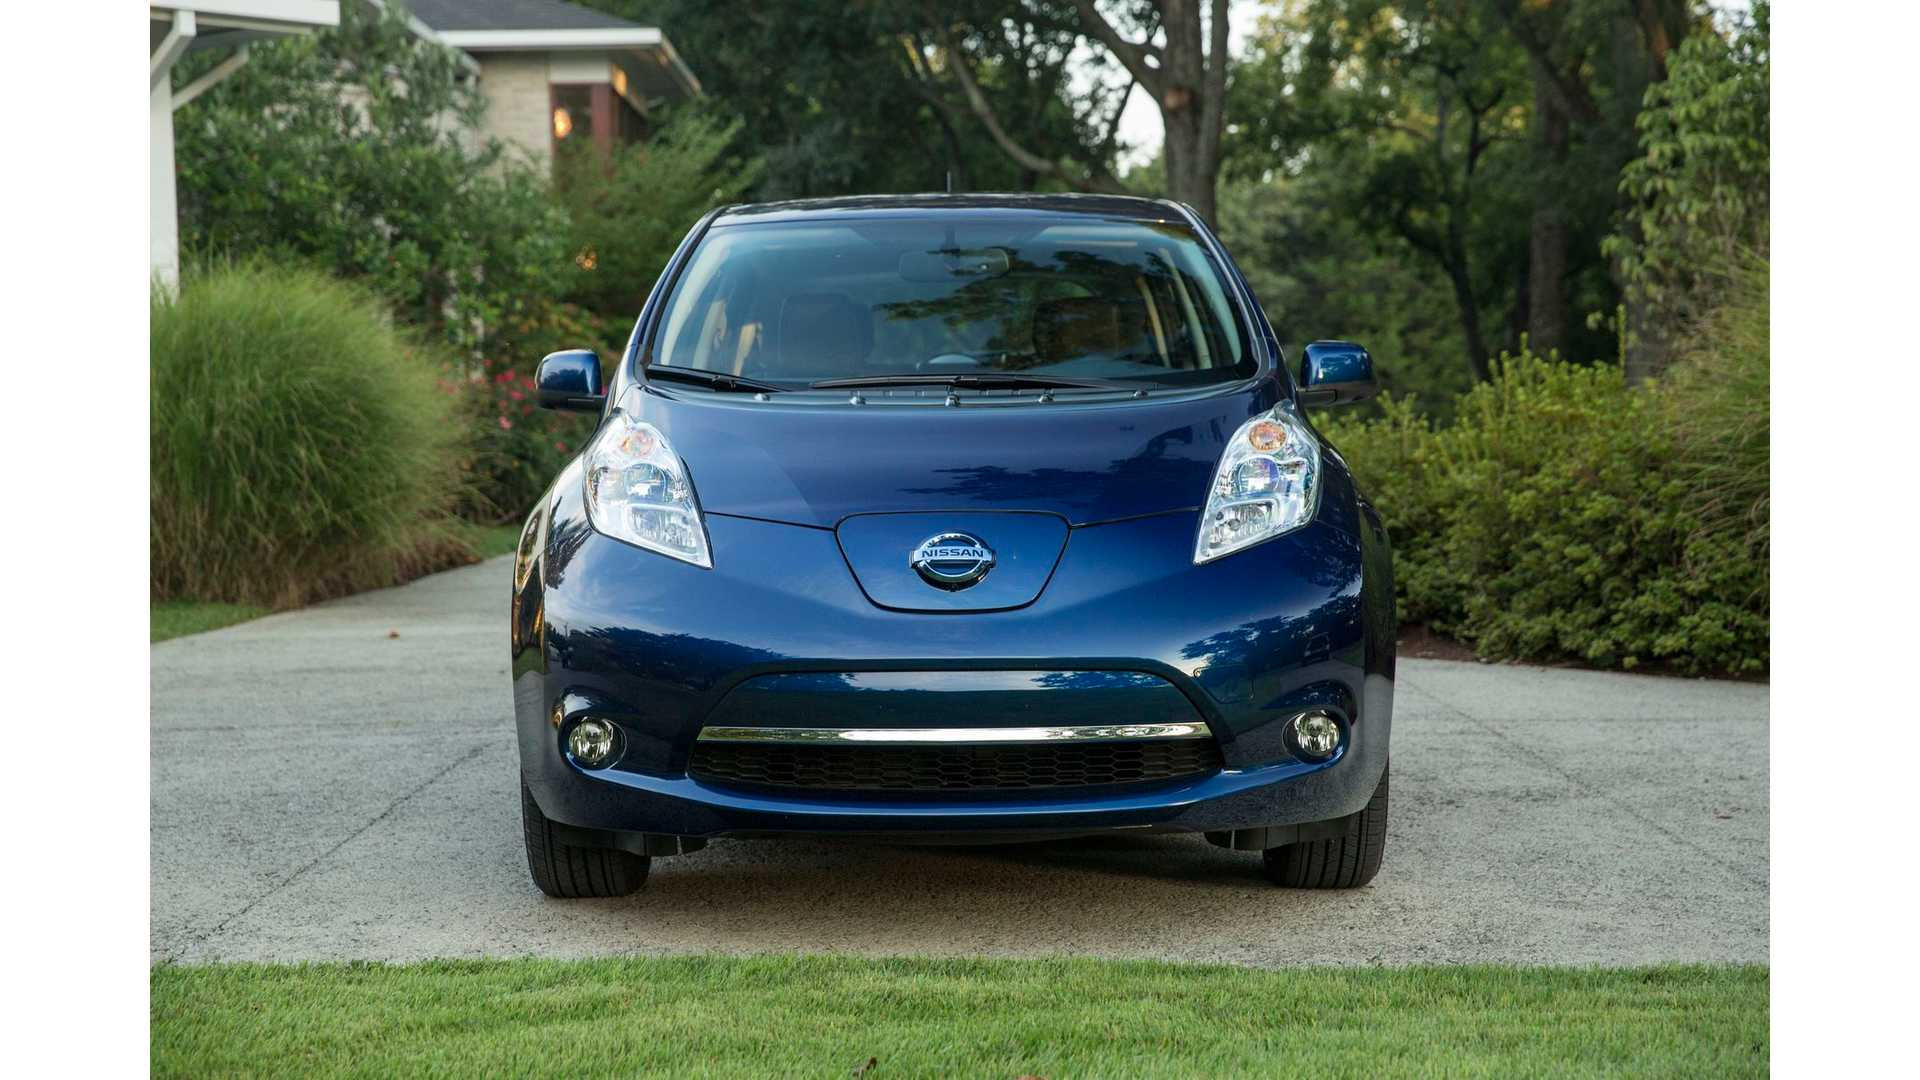 Breaking 30 Kwh 2016 Nissan Leaf Officially Gets Epa 107 Mile Rating With 116 City 95 Highway